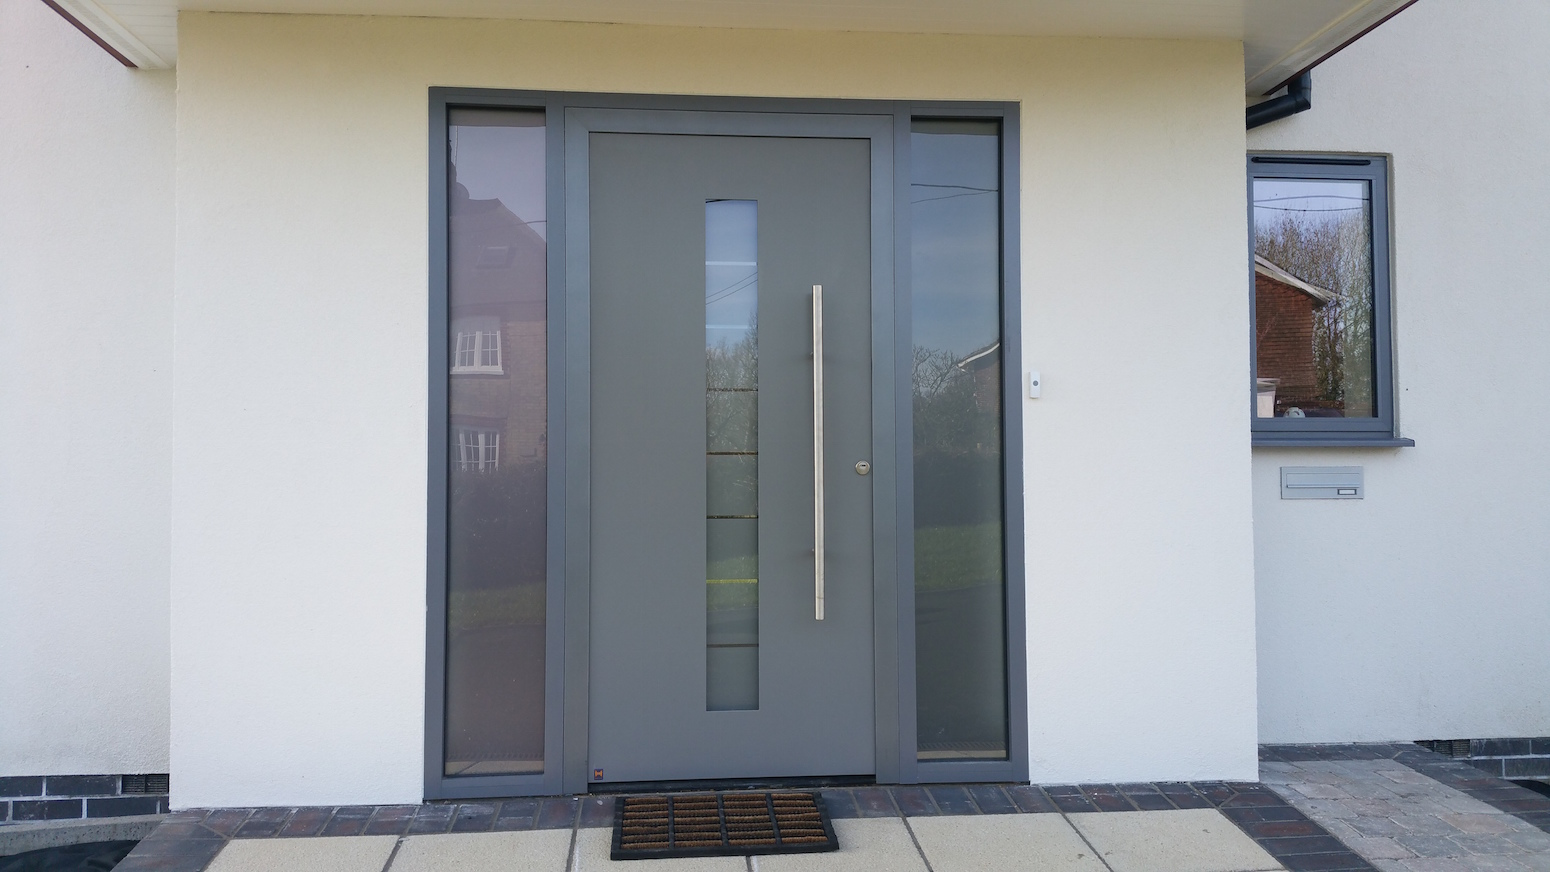 Dwl installers of hormann front doors in south east dwl for Small double front doors